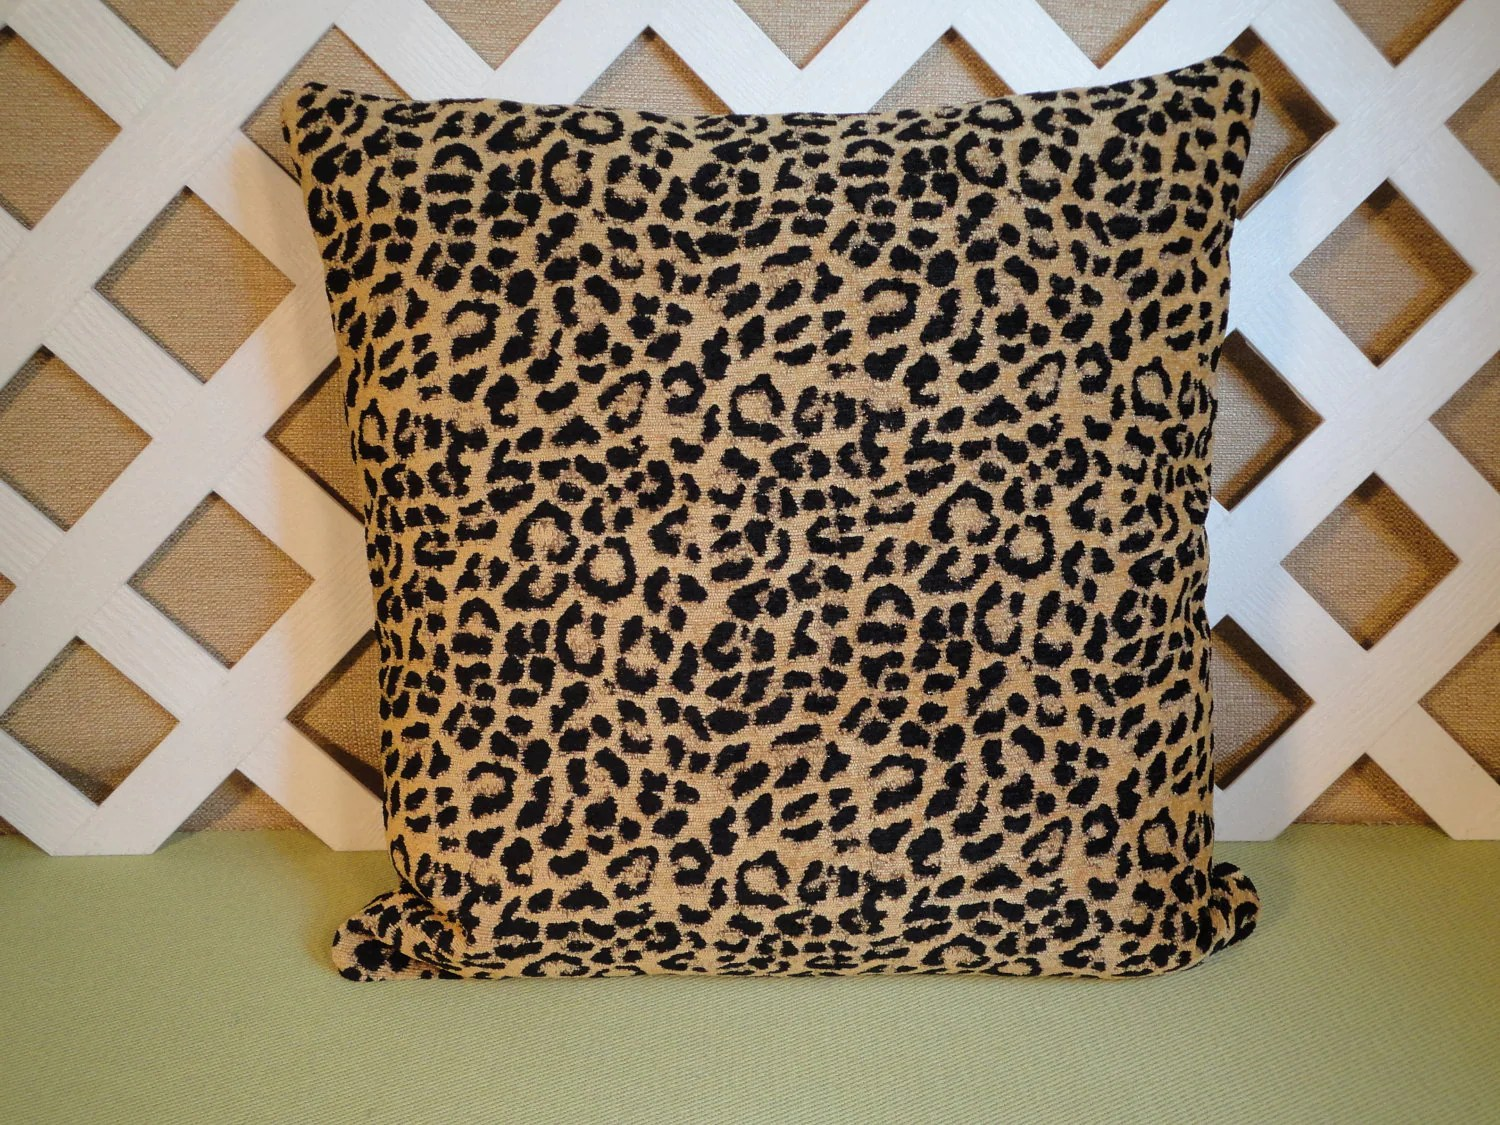 Leopard Print Pillow Cover Leopard Pillow Black and Tan